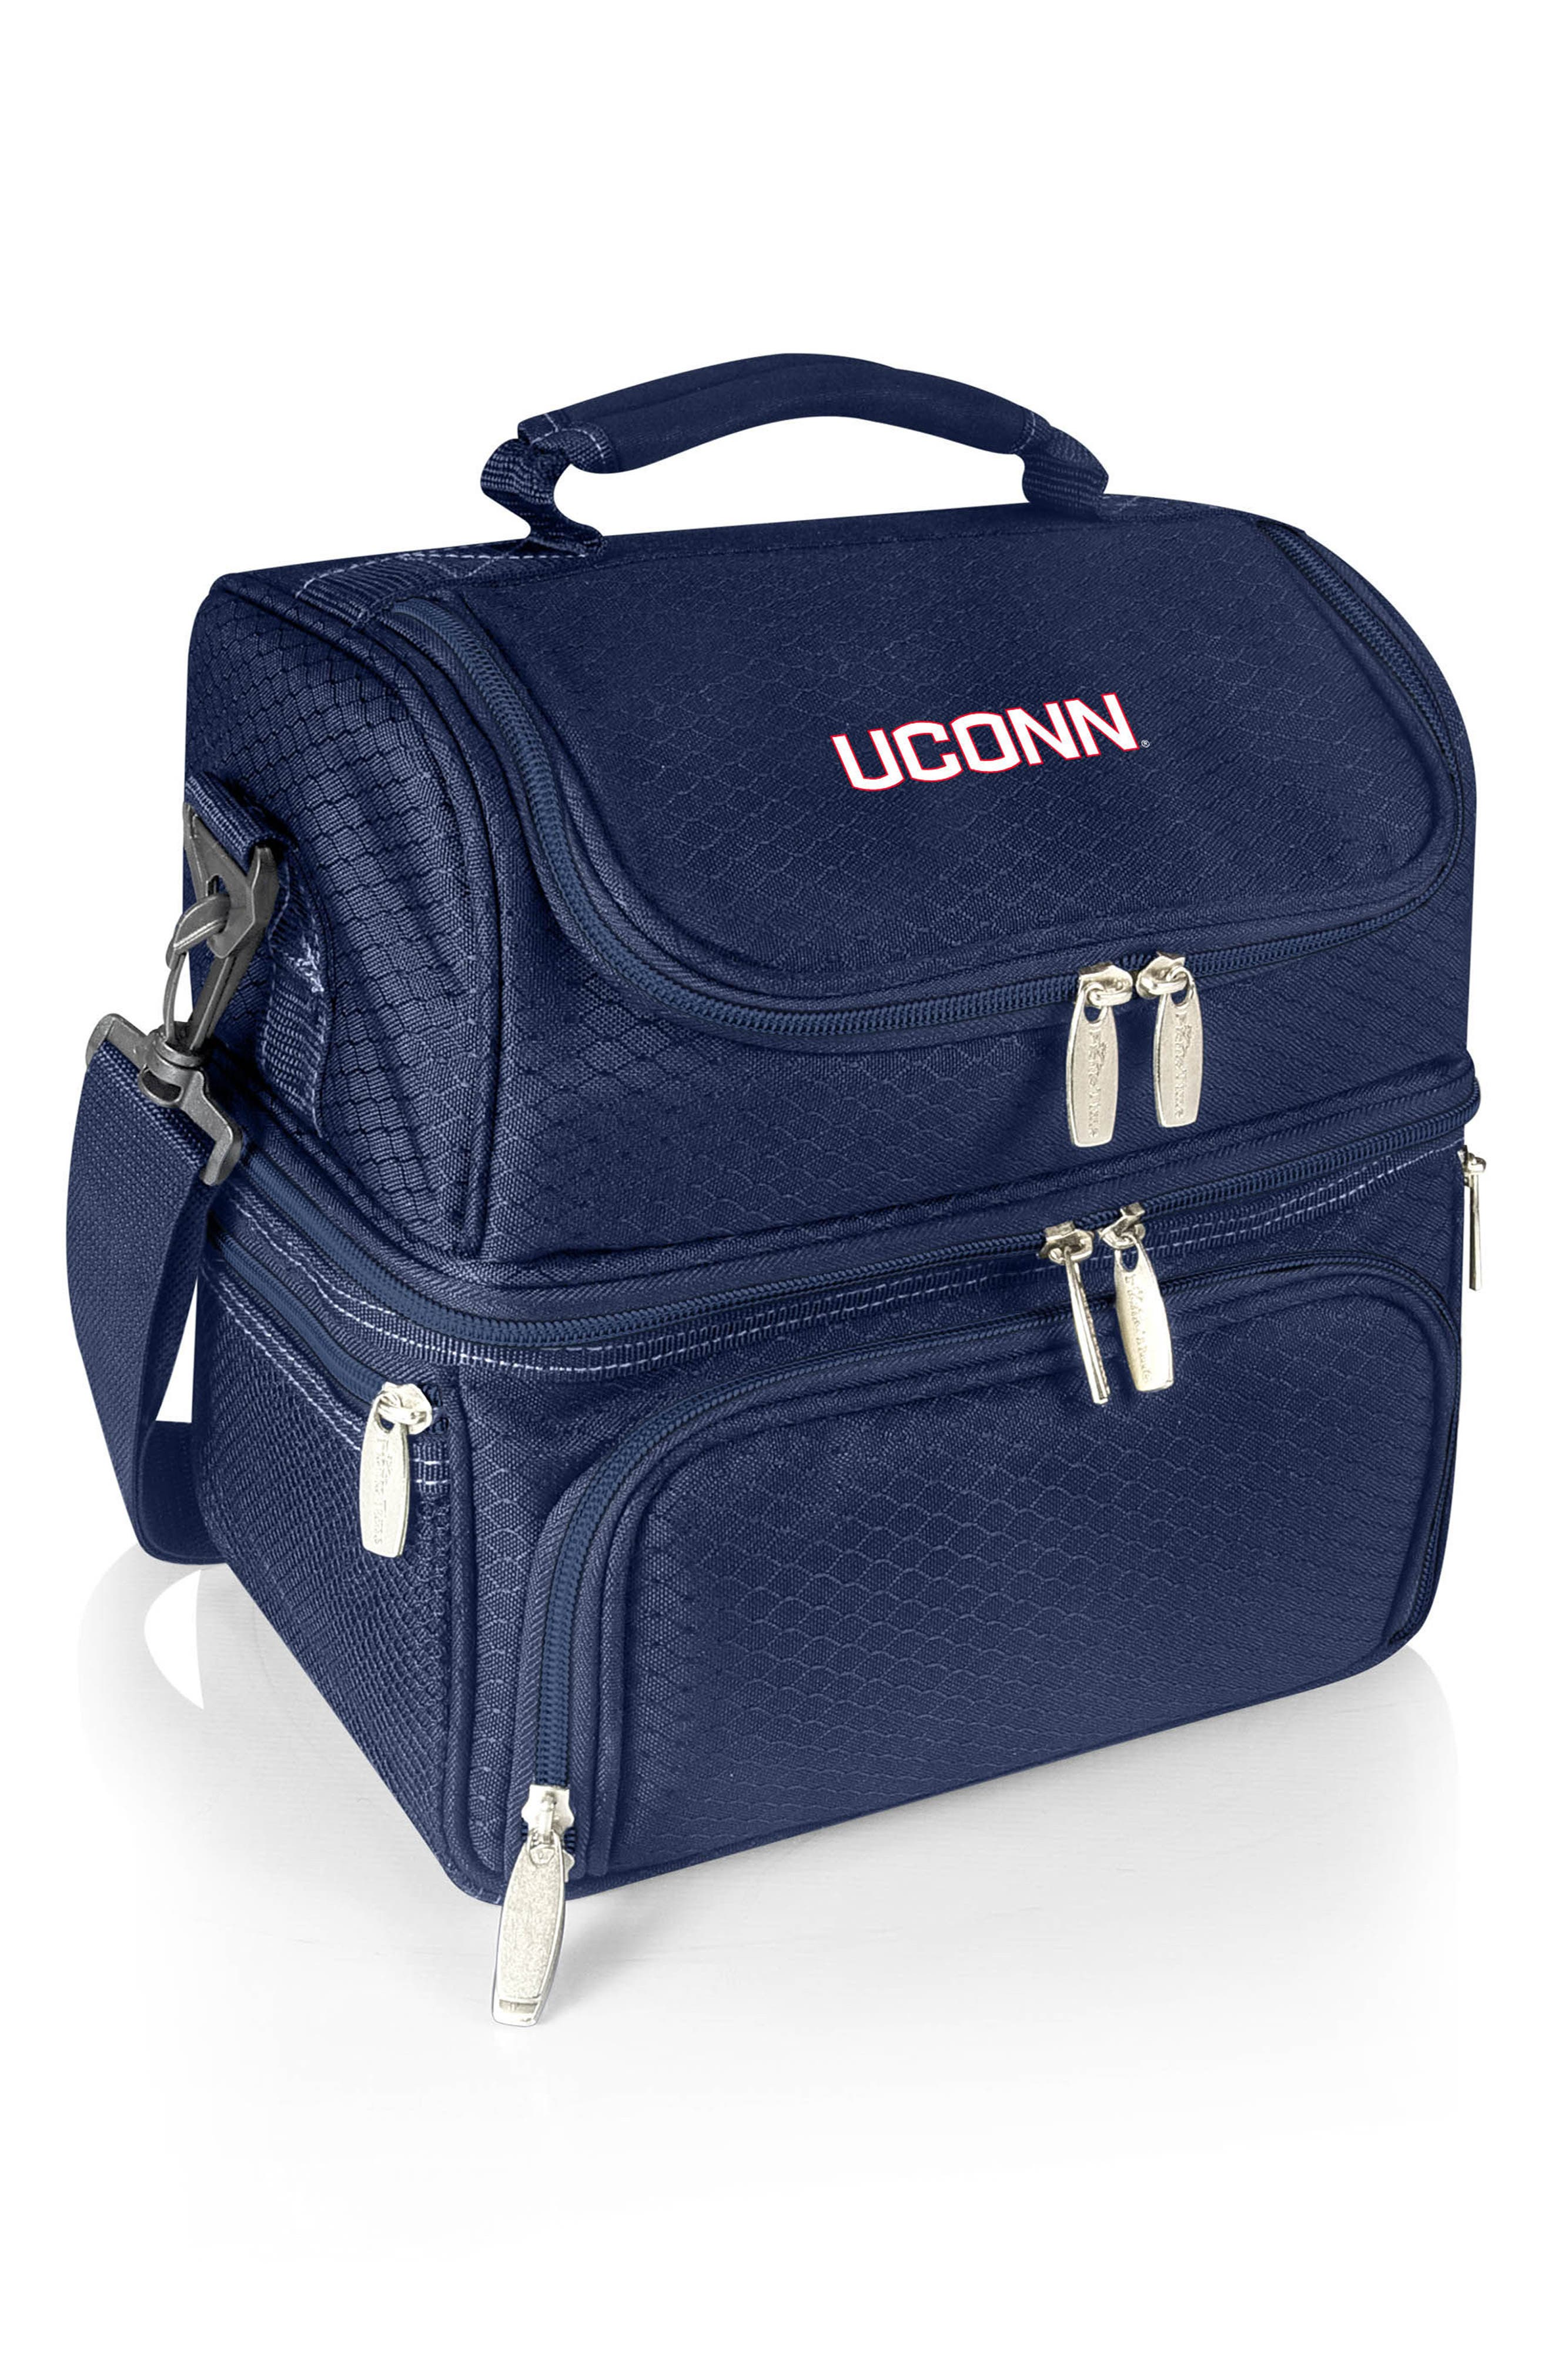 Navy Pranzo College Team Logo Lunch Tote,                             Main thumbnail 1, color,                             Uconn Huskies